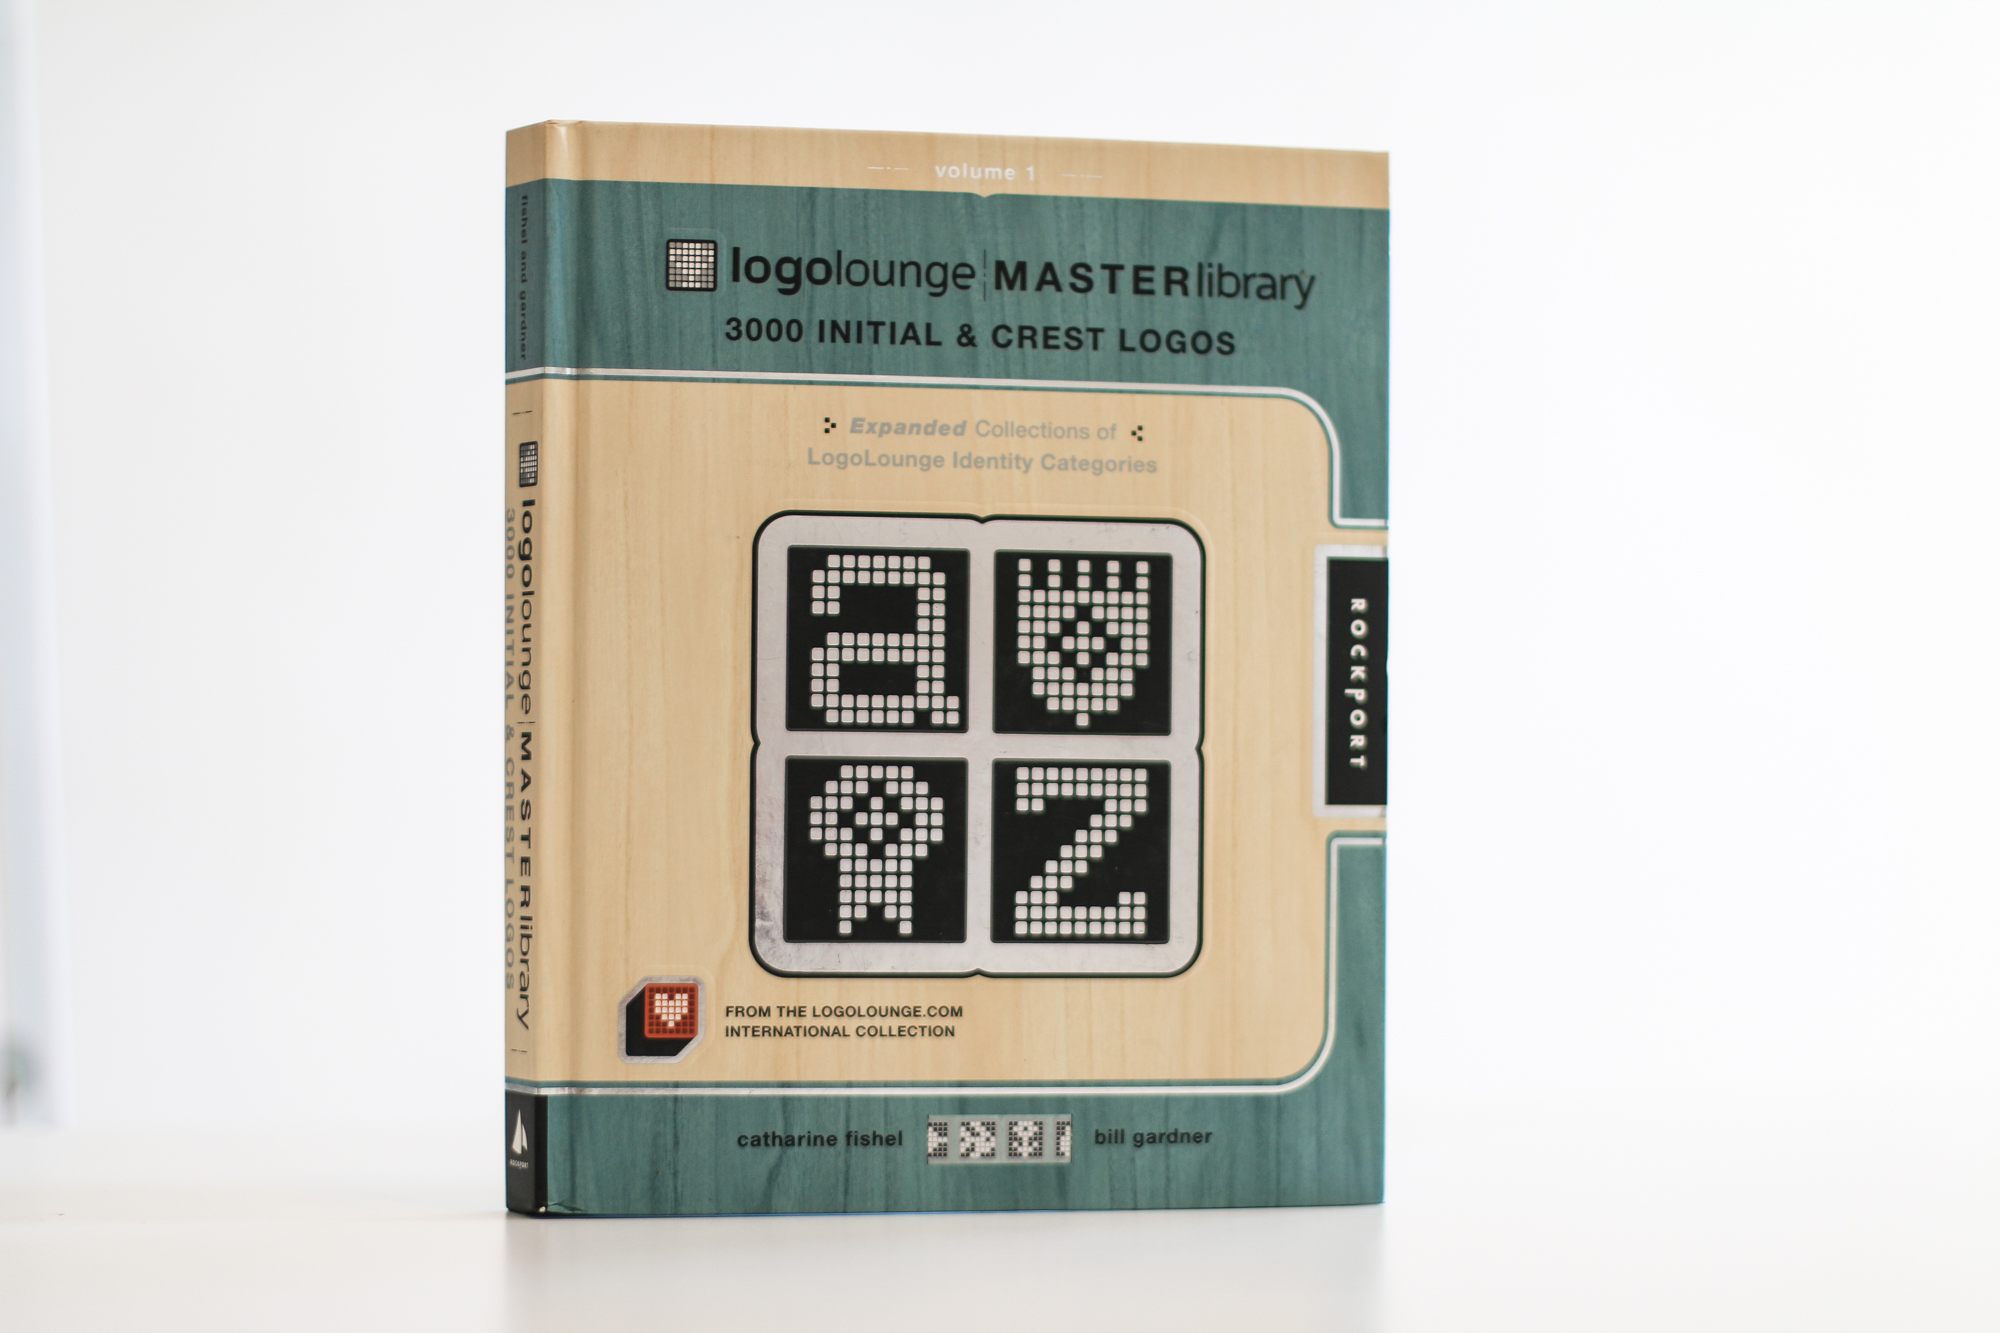 LogoLounge Master Library Series